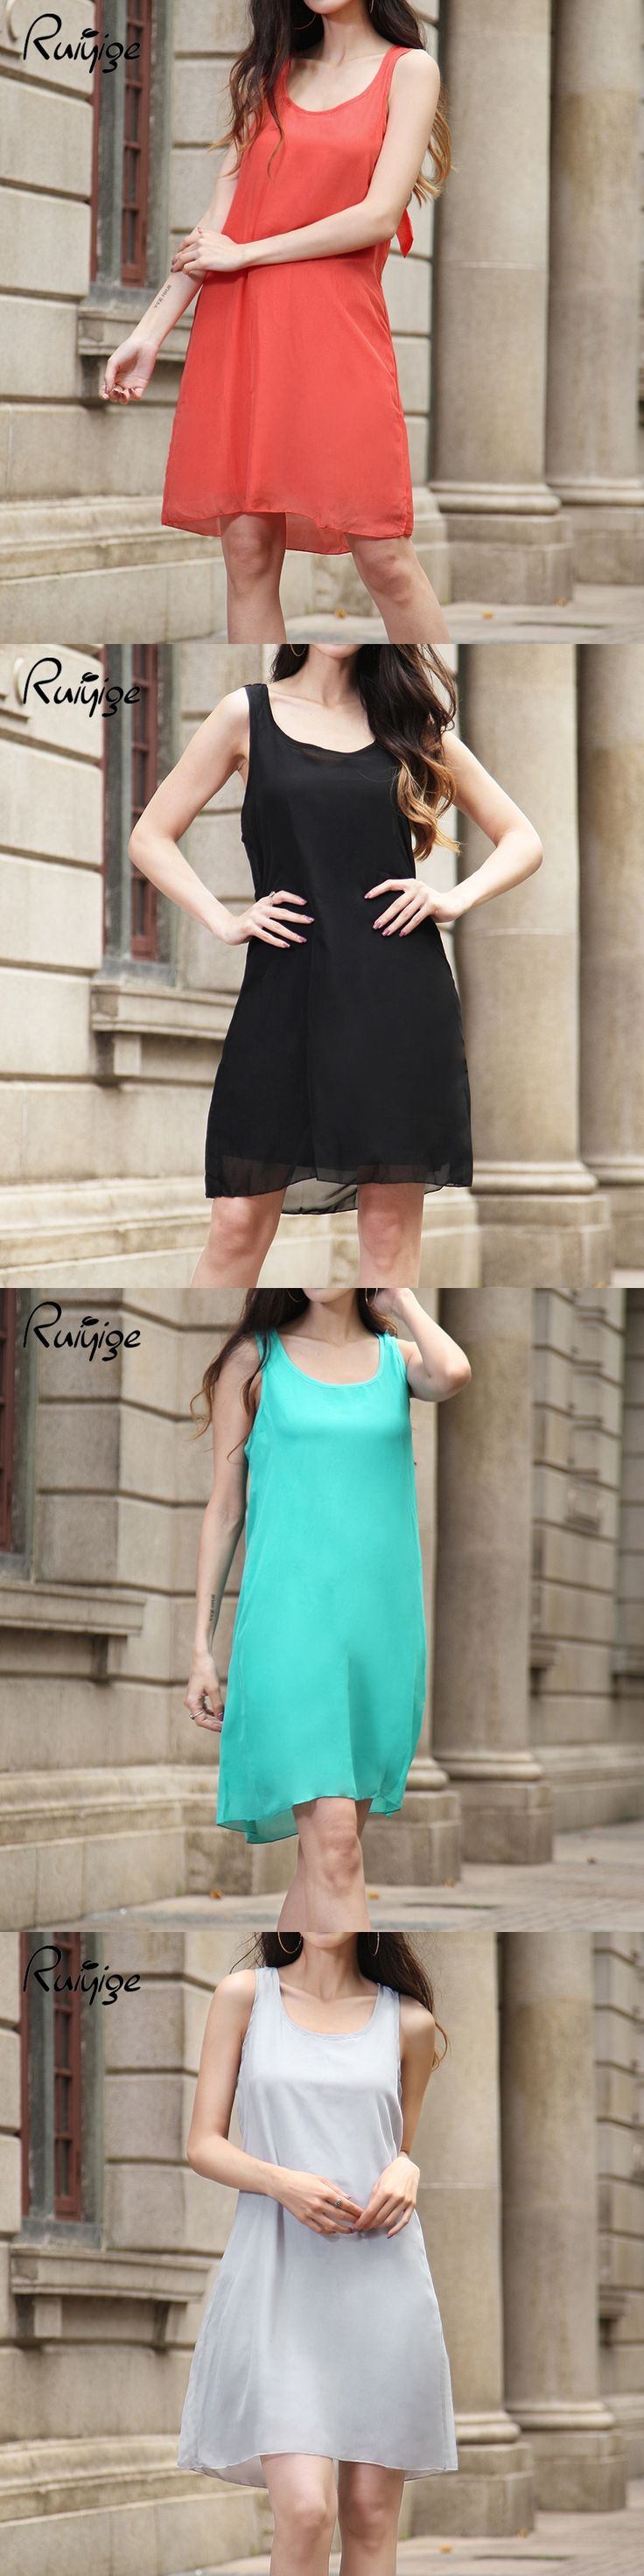 RUIYIGE 2017 Summer Women Casual Bowknot Chiffon Mini Dress Evening Party Club Party O Neck Sleeveless Solid Dresses 4 Colours